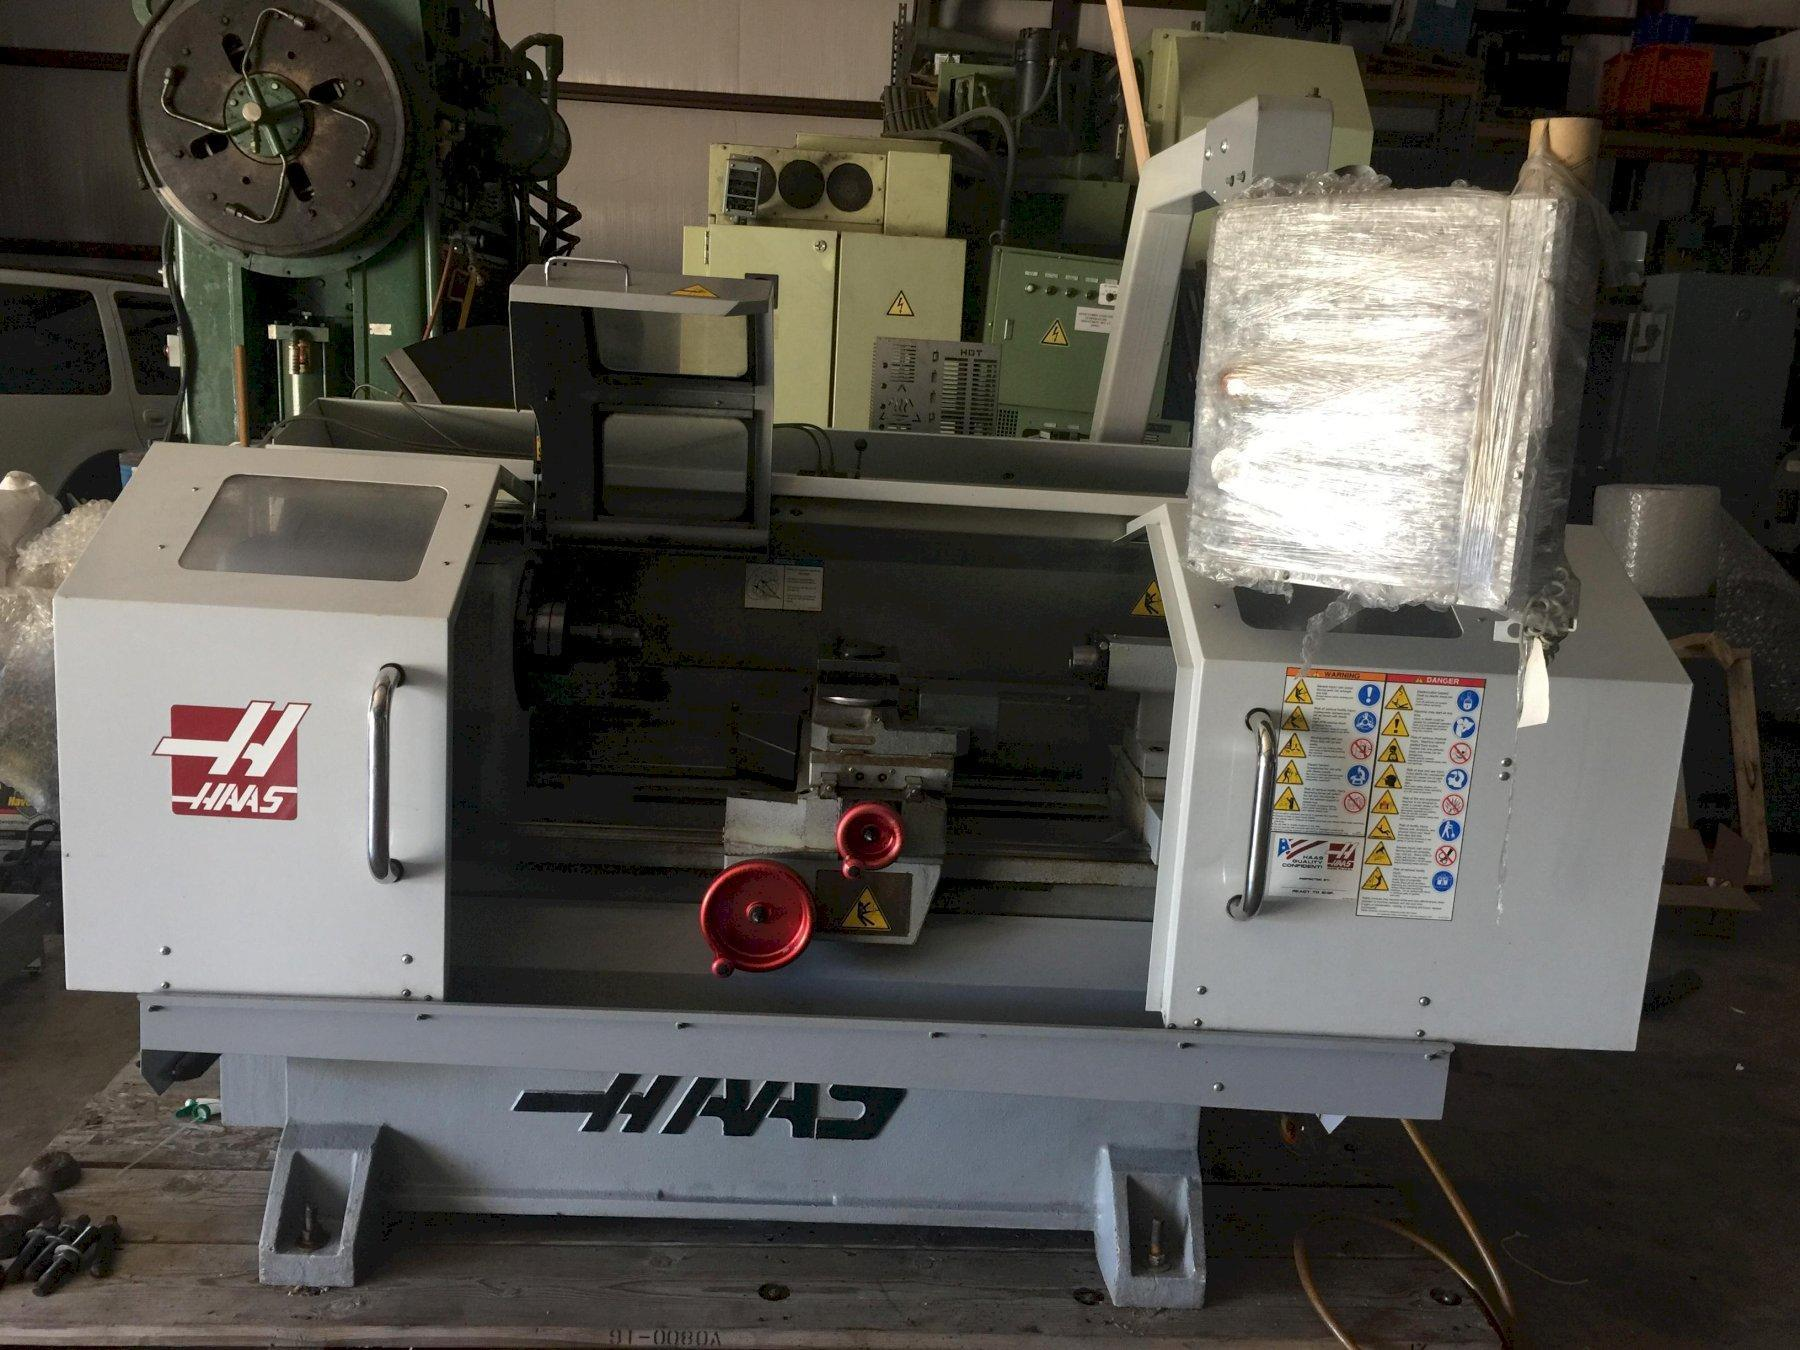 Haas TL-1 Toolroom Lathe 2008 with: Haas Control, Manual Tailstock, A2-5C Collet Chuck, Rigid Tapping, and Coolant Tank.